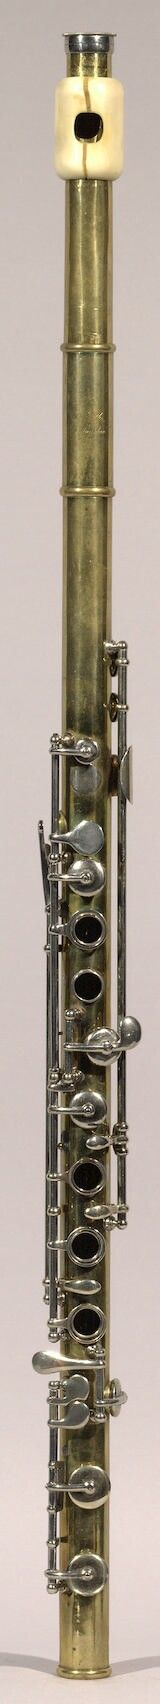 Brass flute with ivory embochure (Theobald Boehm 1847)